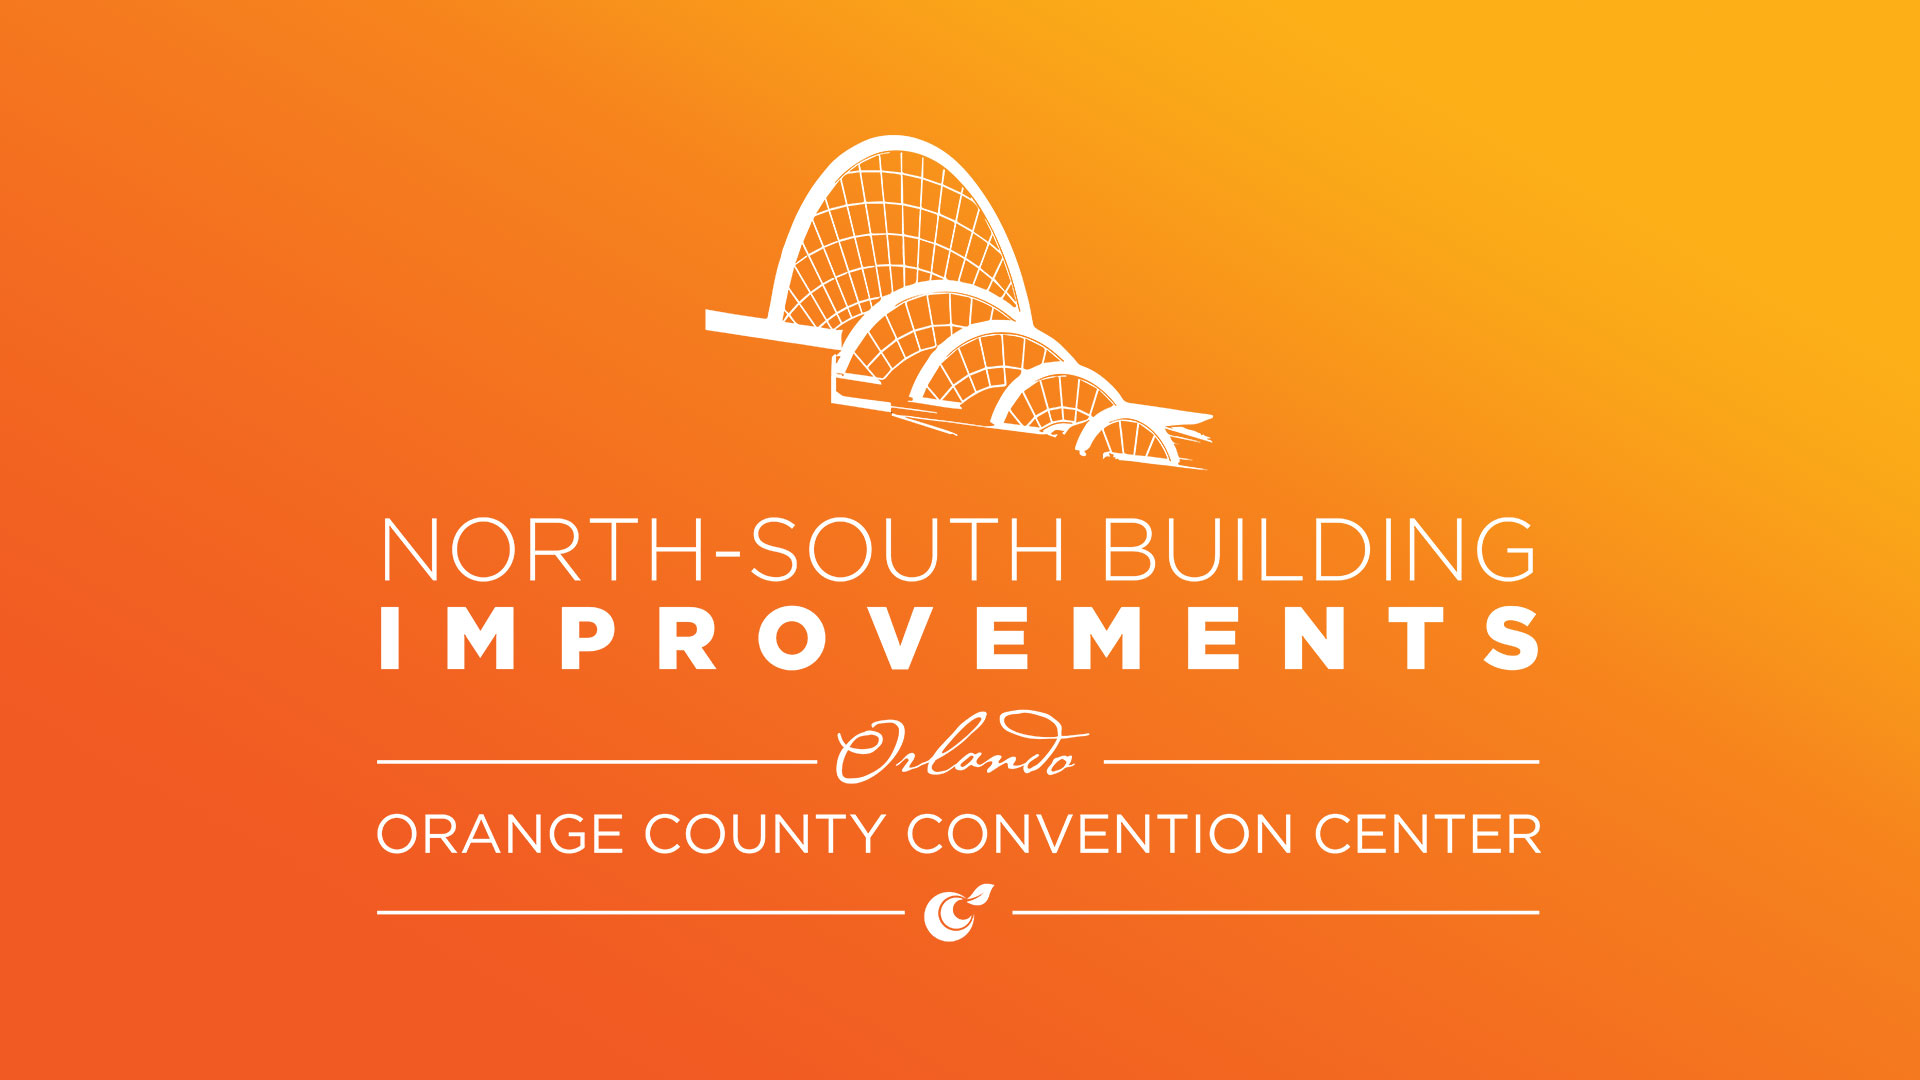 Orange County Convention Center hires Owner's Representative for North-South Building Improvements